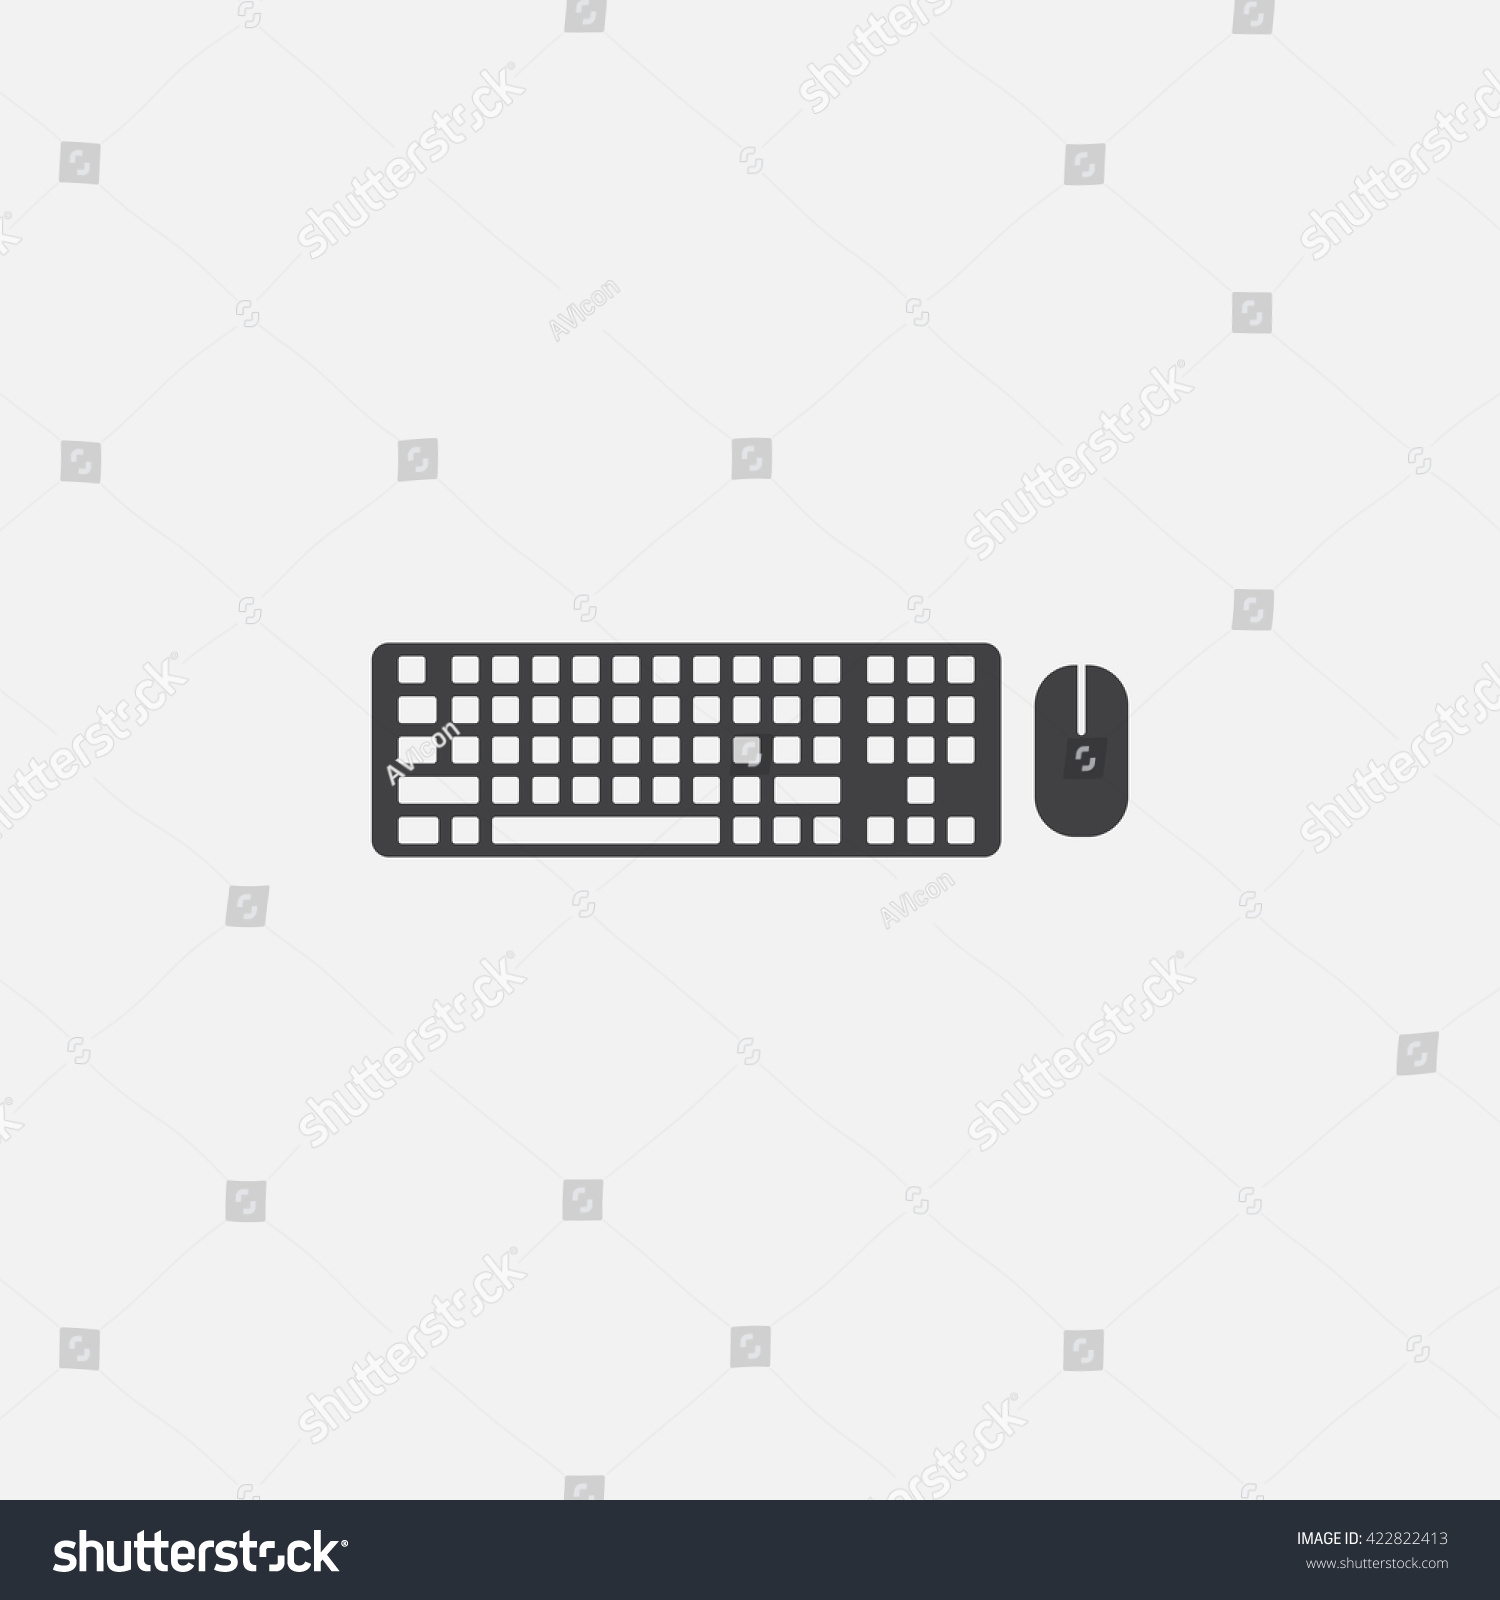 Keyboard Mouse Icon Vector Solid Logo Stock Vector ...